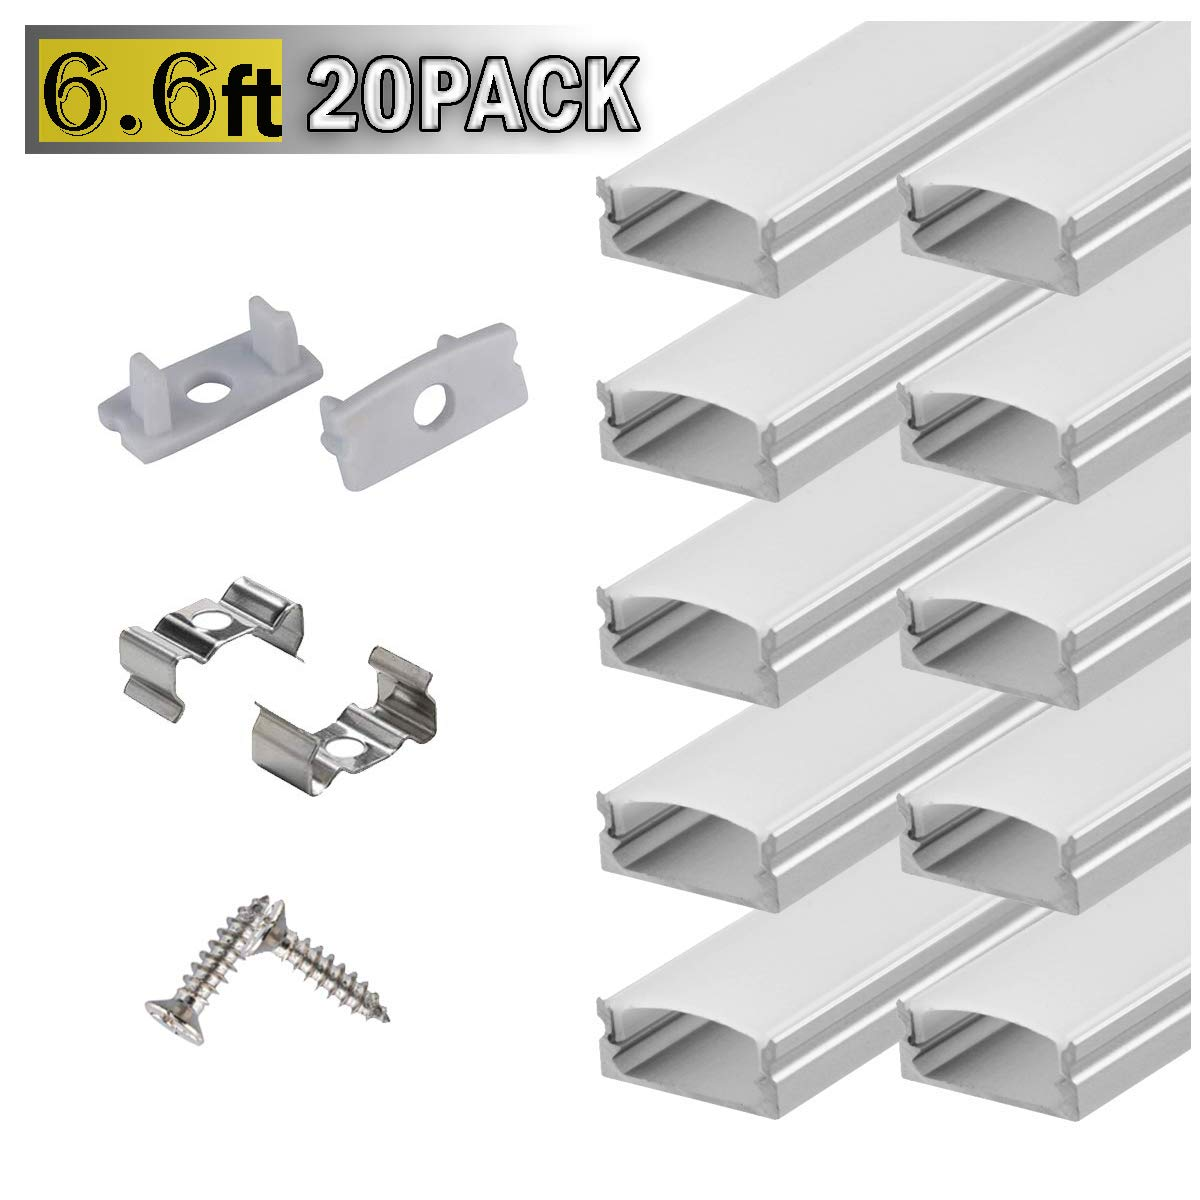 6.6ft/ 2m LED Strip Channel 20-Pack with Milky Cover, End Caps and Mounting Clips, Aluminum LED Profile for Installing LED Rope Light